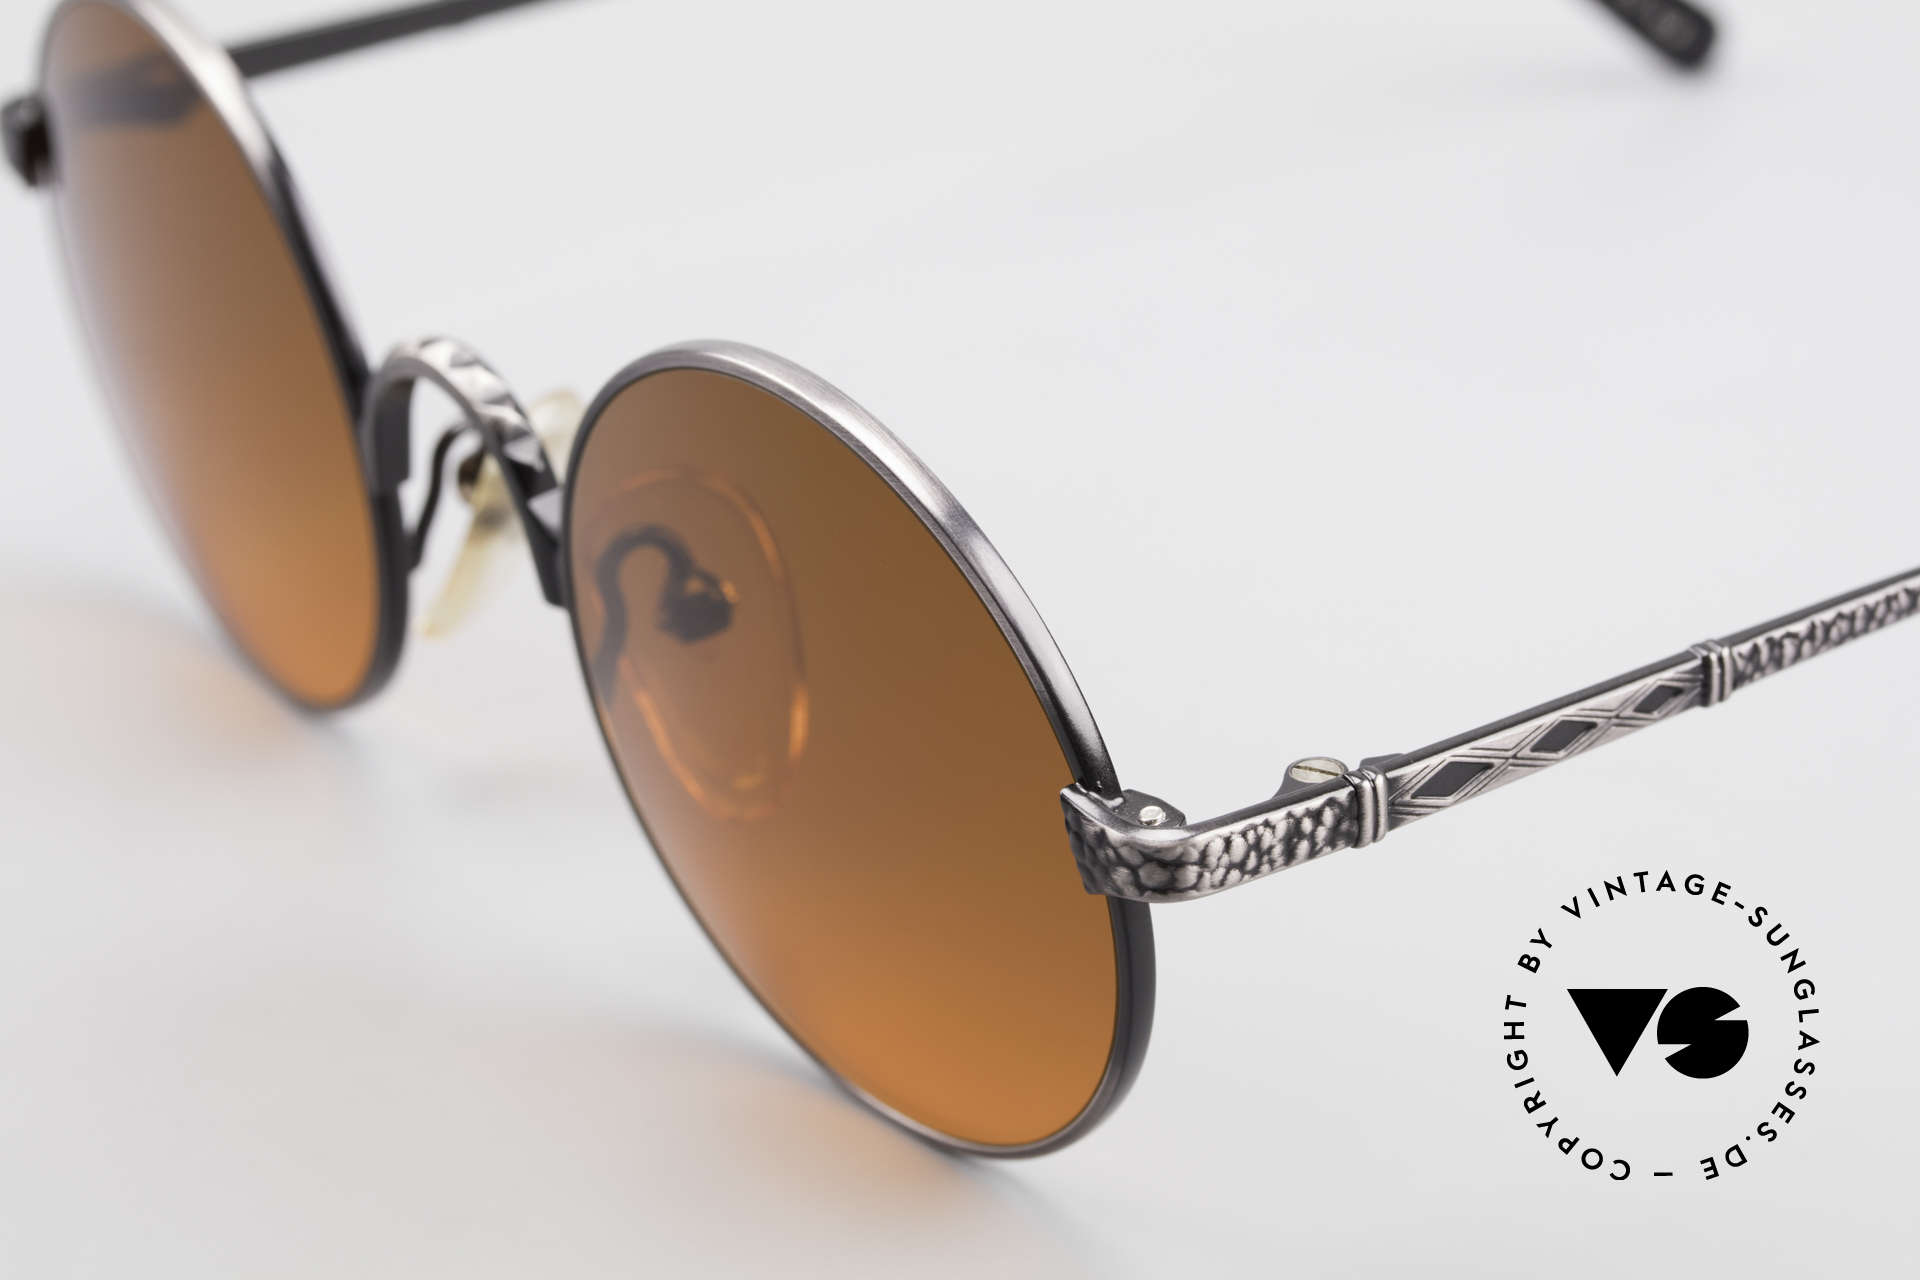 Jean Paul Gaultier 55-9671 Round 90's JPG Sunglasses, NO RETRO shades, but an old 90s JPG Original, Made for Men and Women